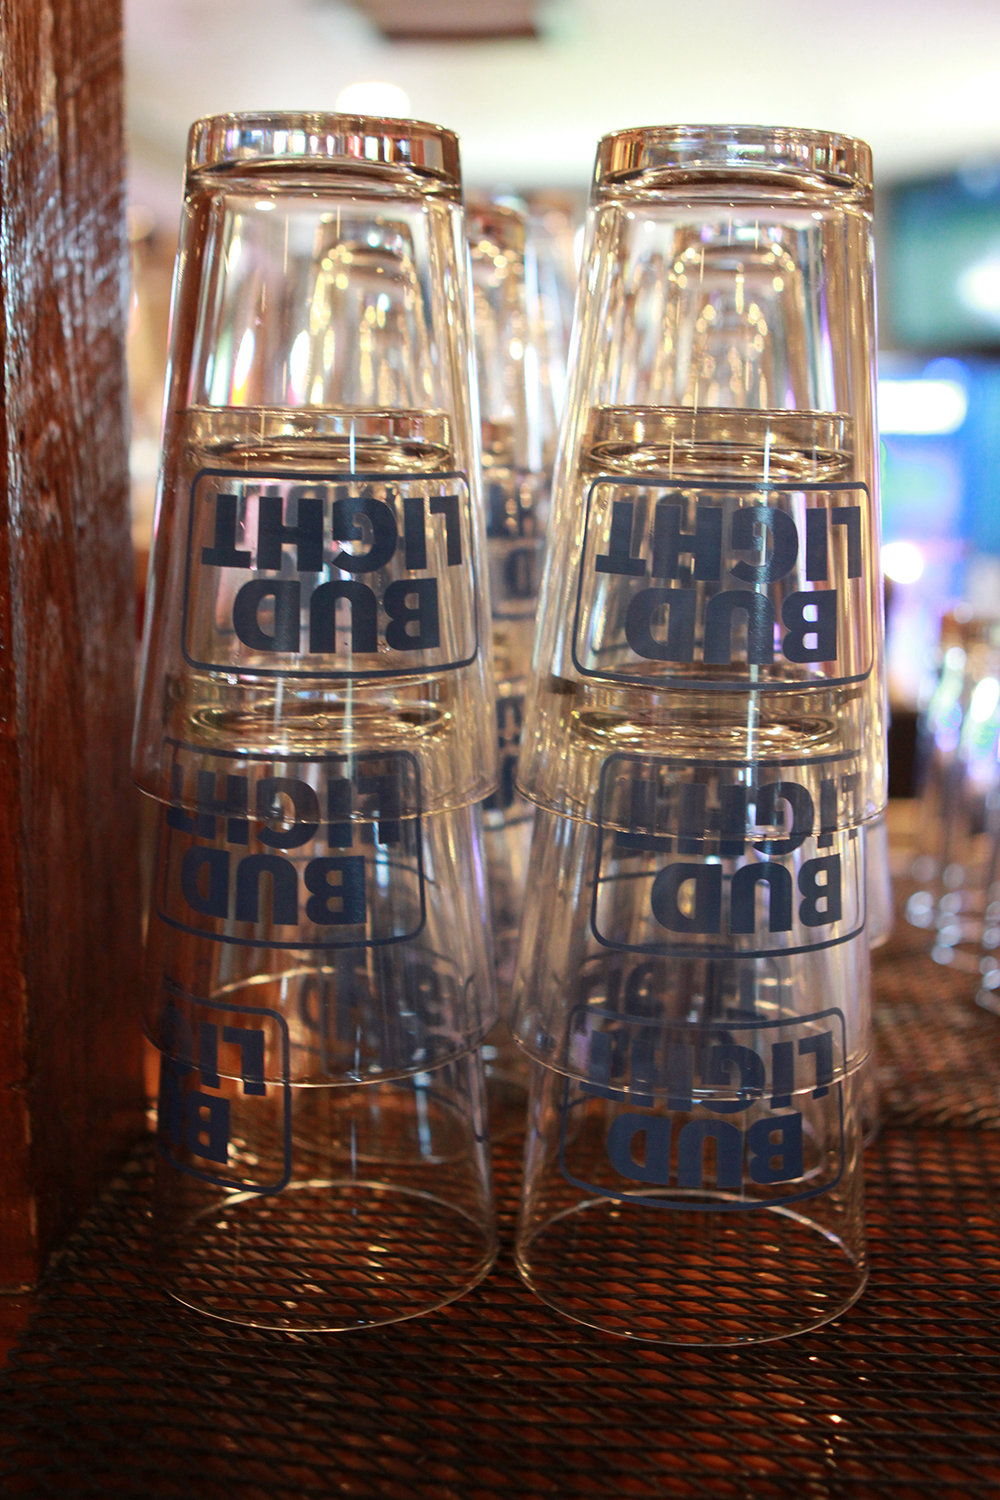 KNOX BUD LIGHT GLASS.jpg